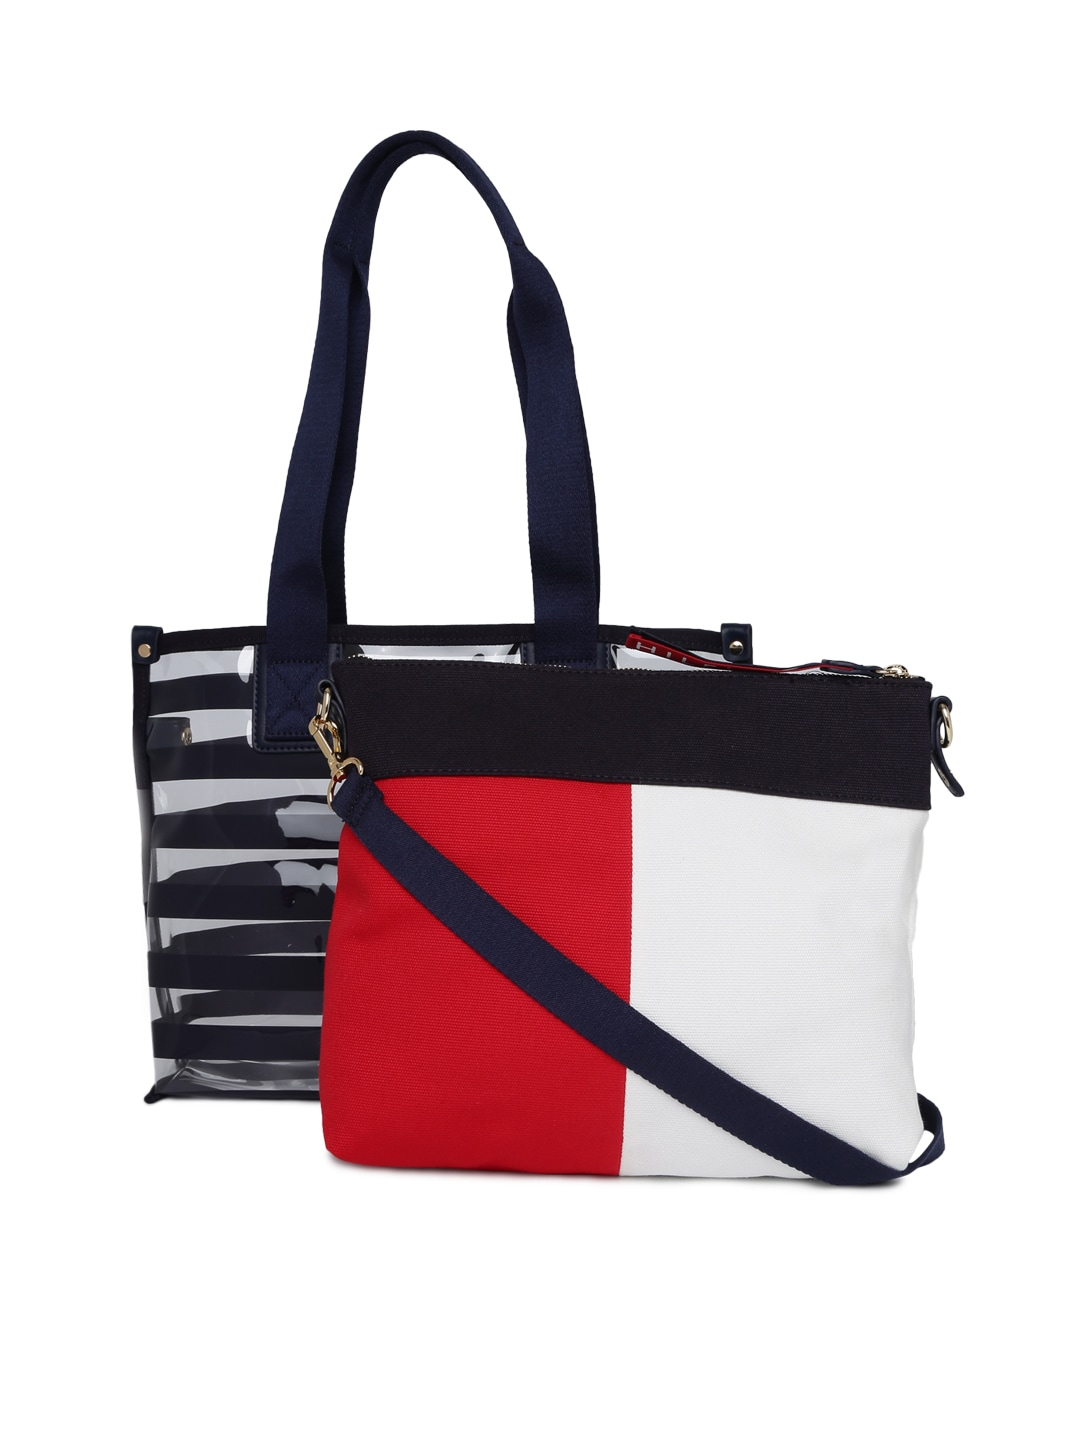 8e910d082f Bags It Handbags Sling - Buy Bags It Handbags Sling online in India